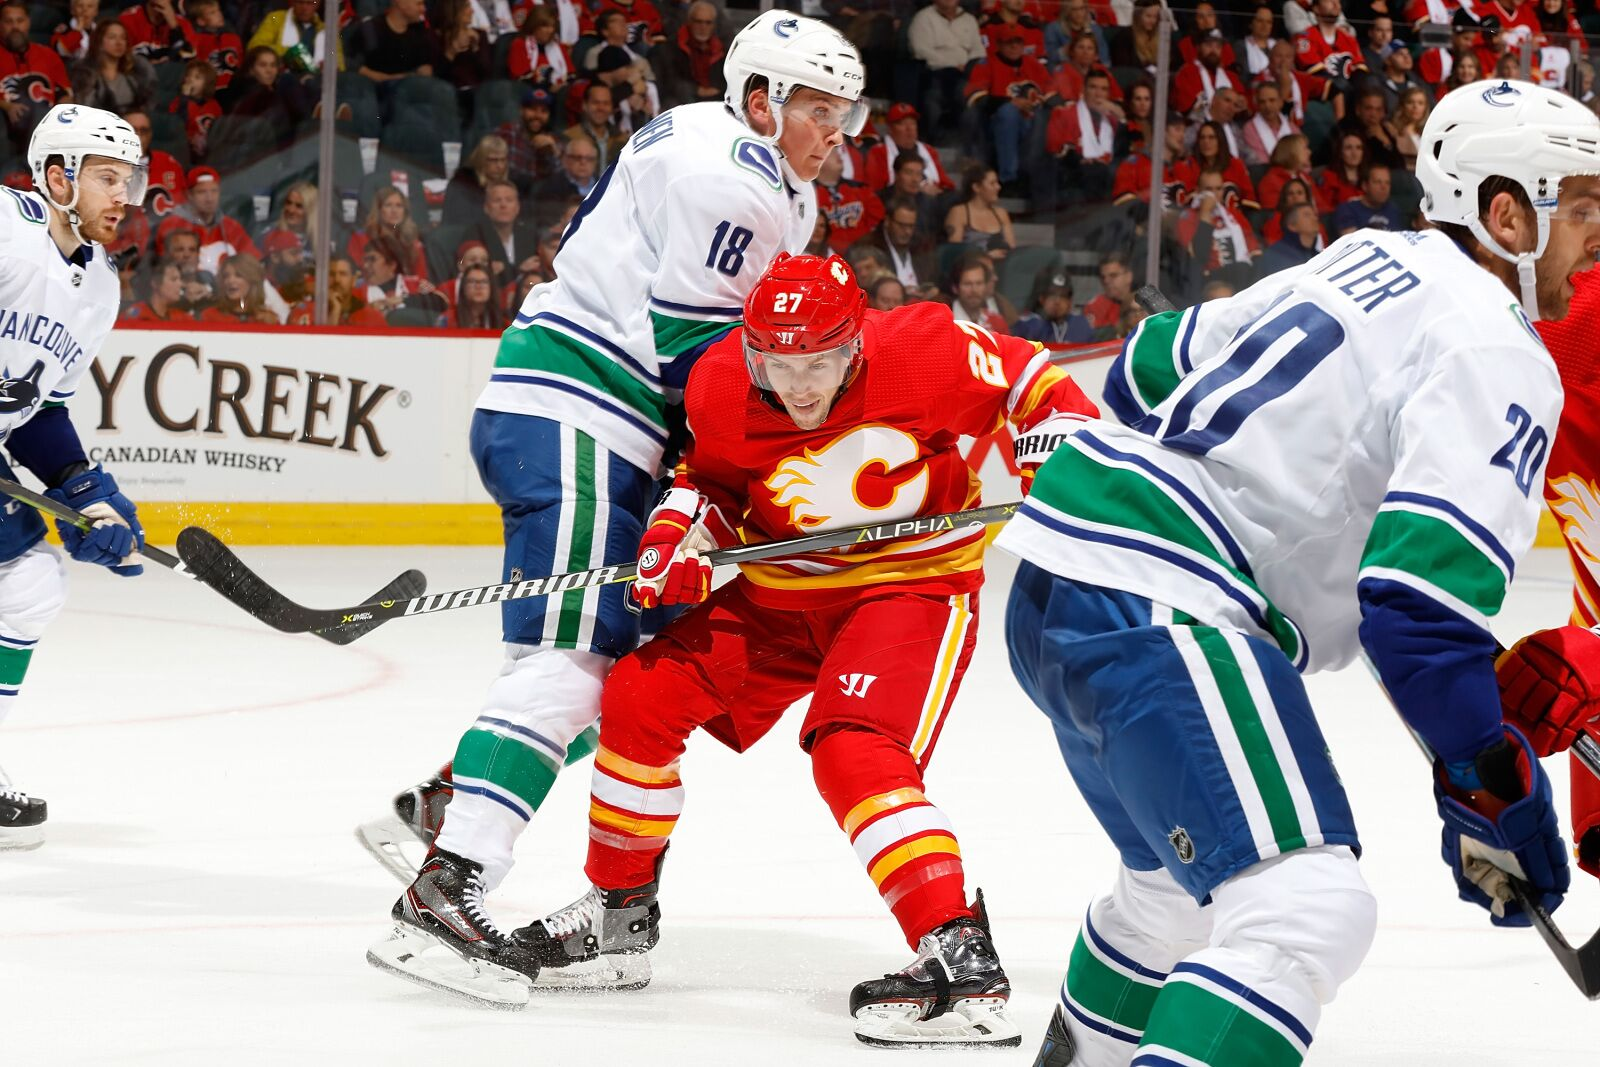 Vancouver Canucks gameday: In search of first win vs. Calgary